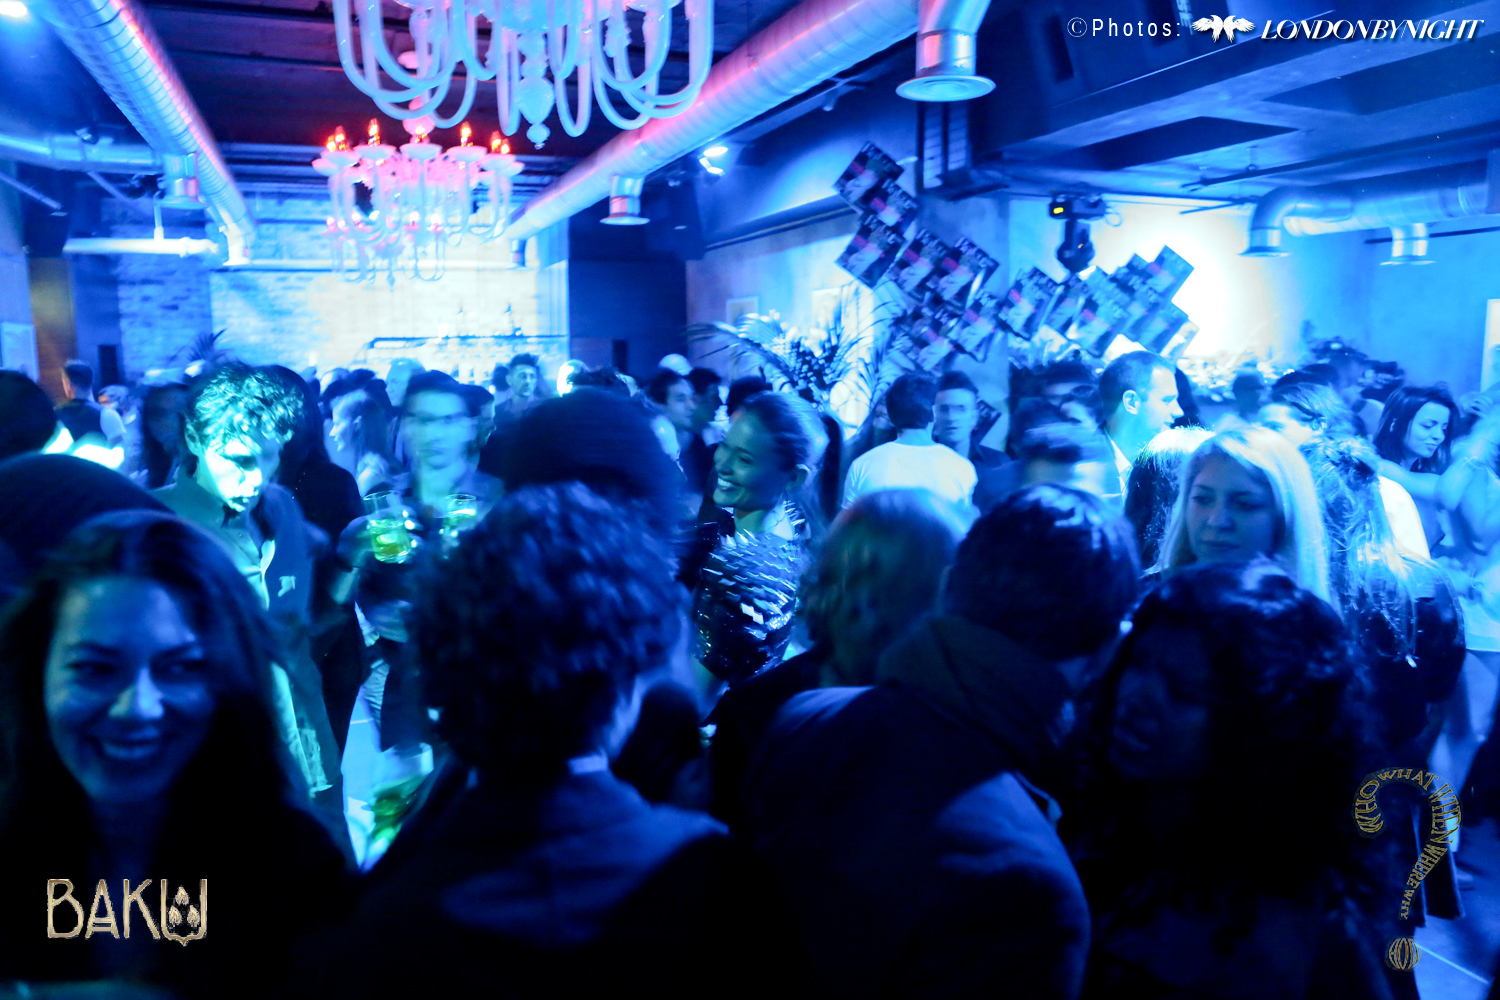 2012 11 30 Baku_ jimmy de paris1225.jpg